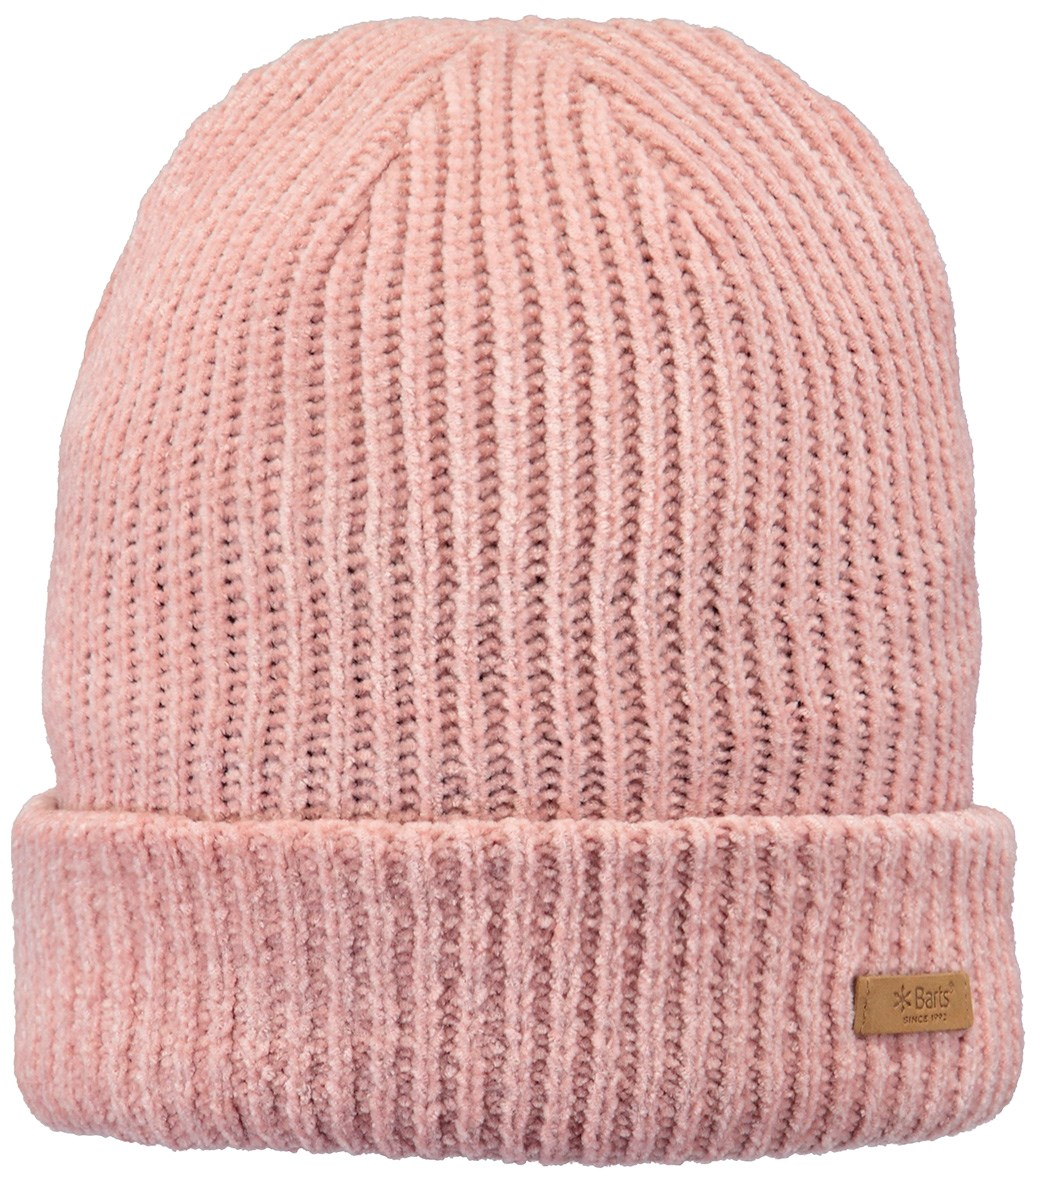 6d1226e18d4 Barts Veloucha Ladies Beanie Hat Pink. 0 (Be the first to add a review!)